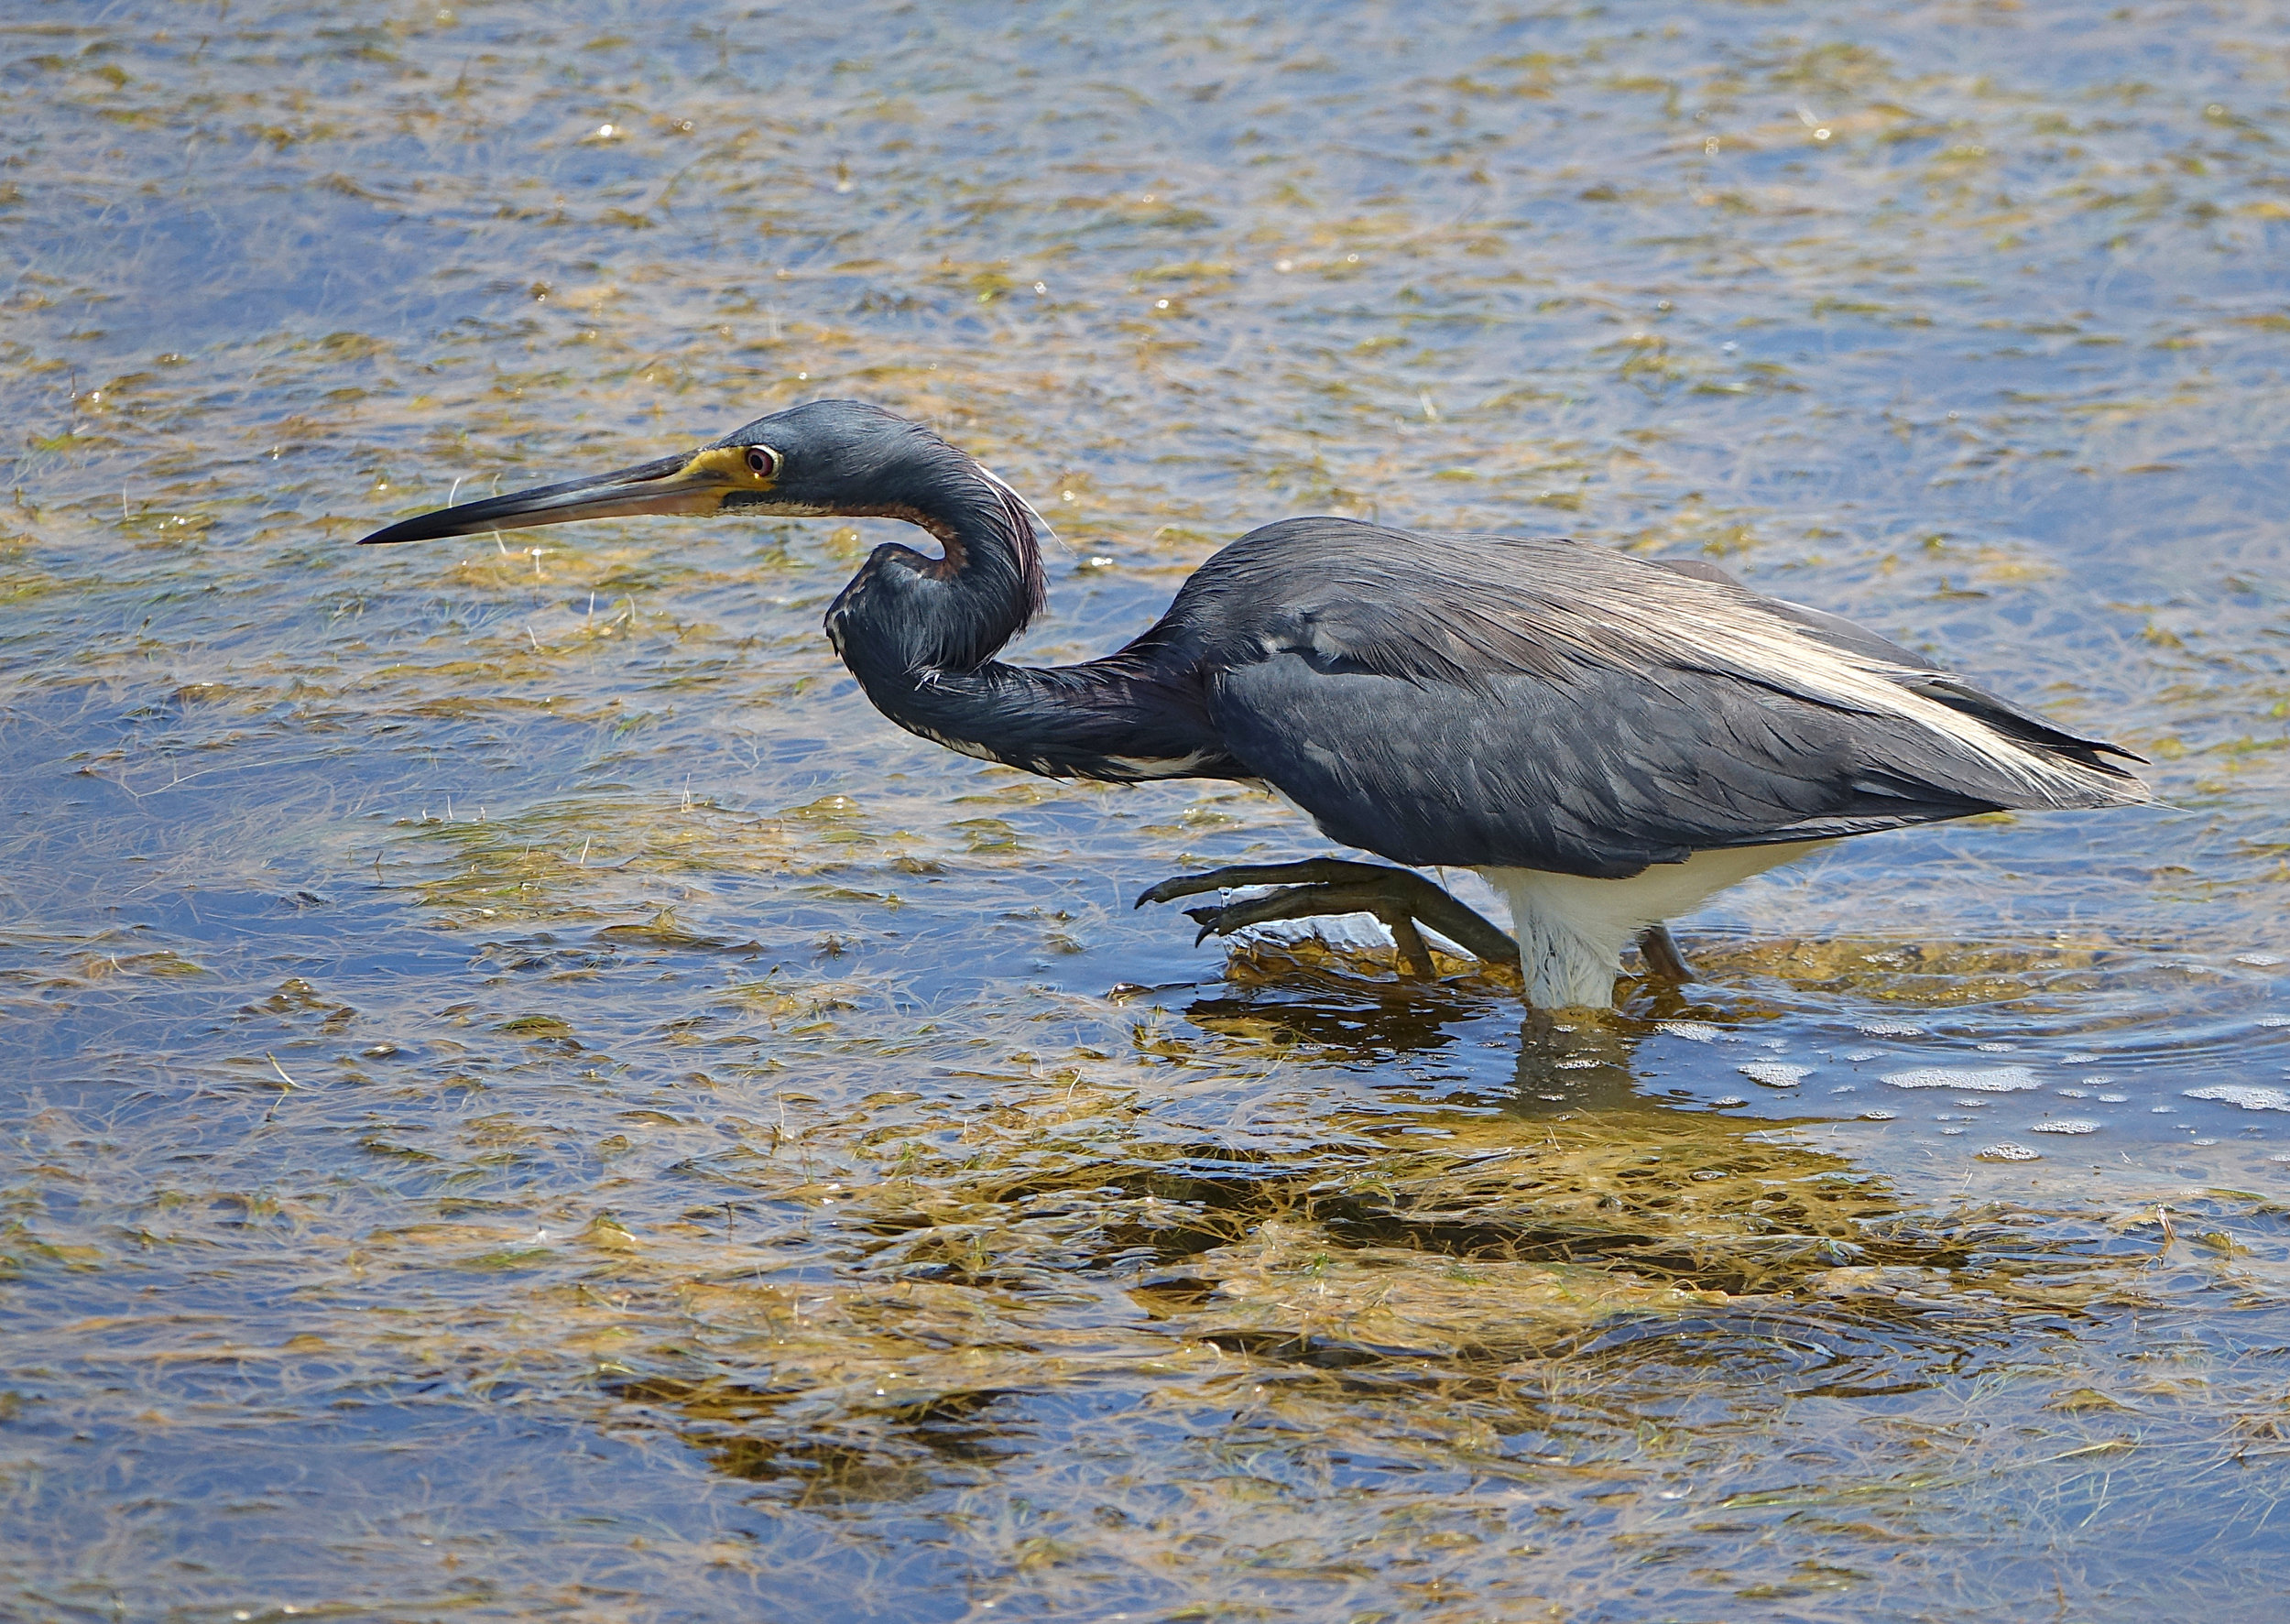 TRICOLORED HERON (Egretta tricolor), South Carolina, July 2018